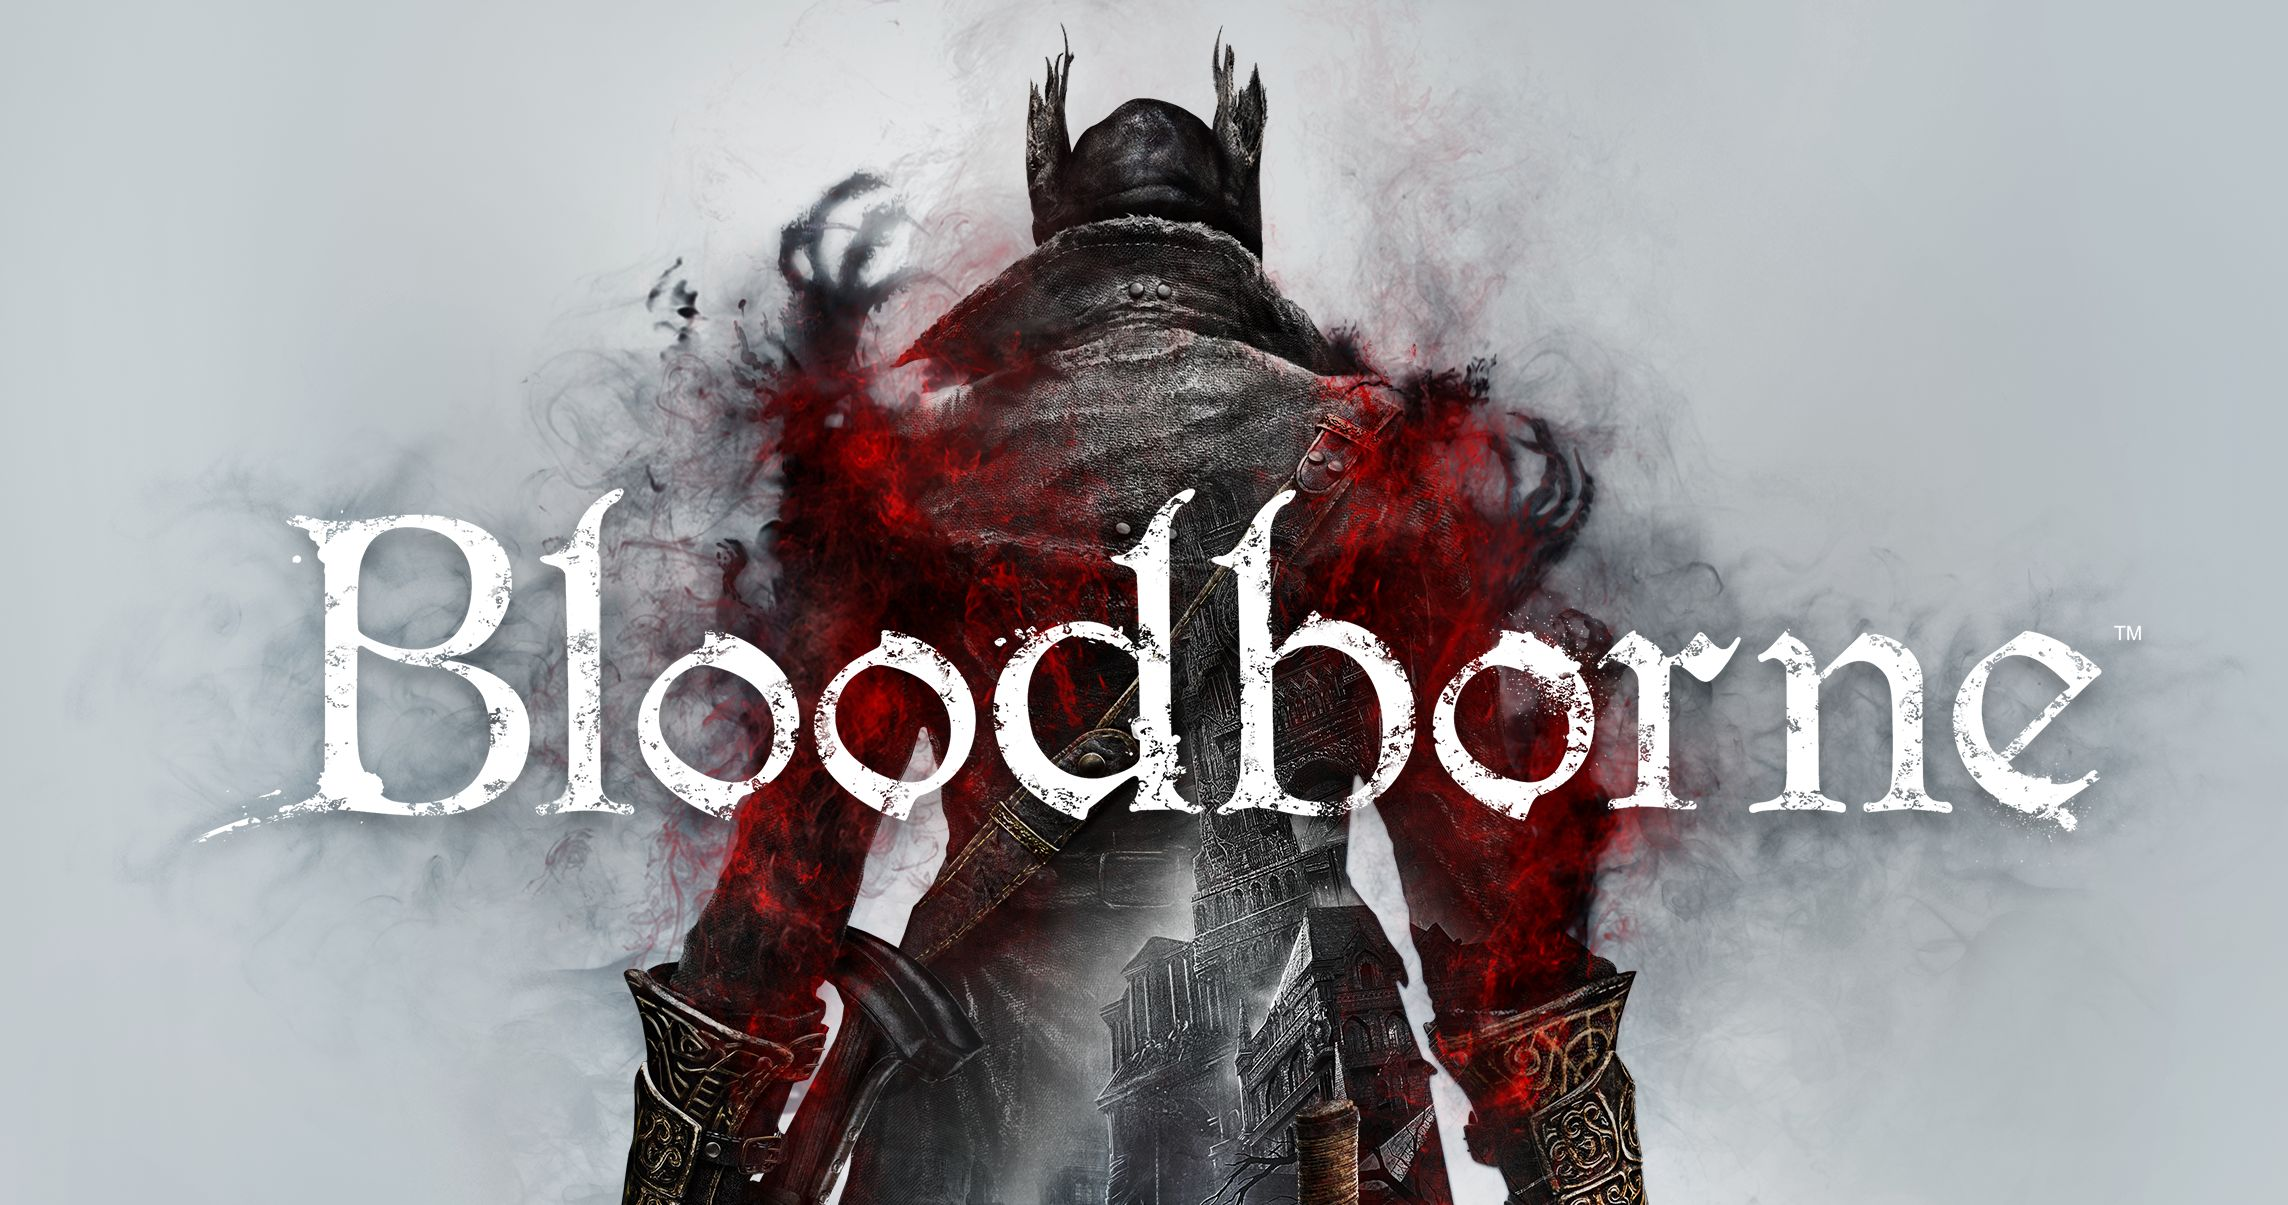 PS4 Exclusive Bloodborne: Check Out The Stylish Poster-Size